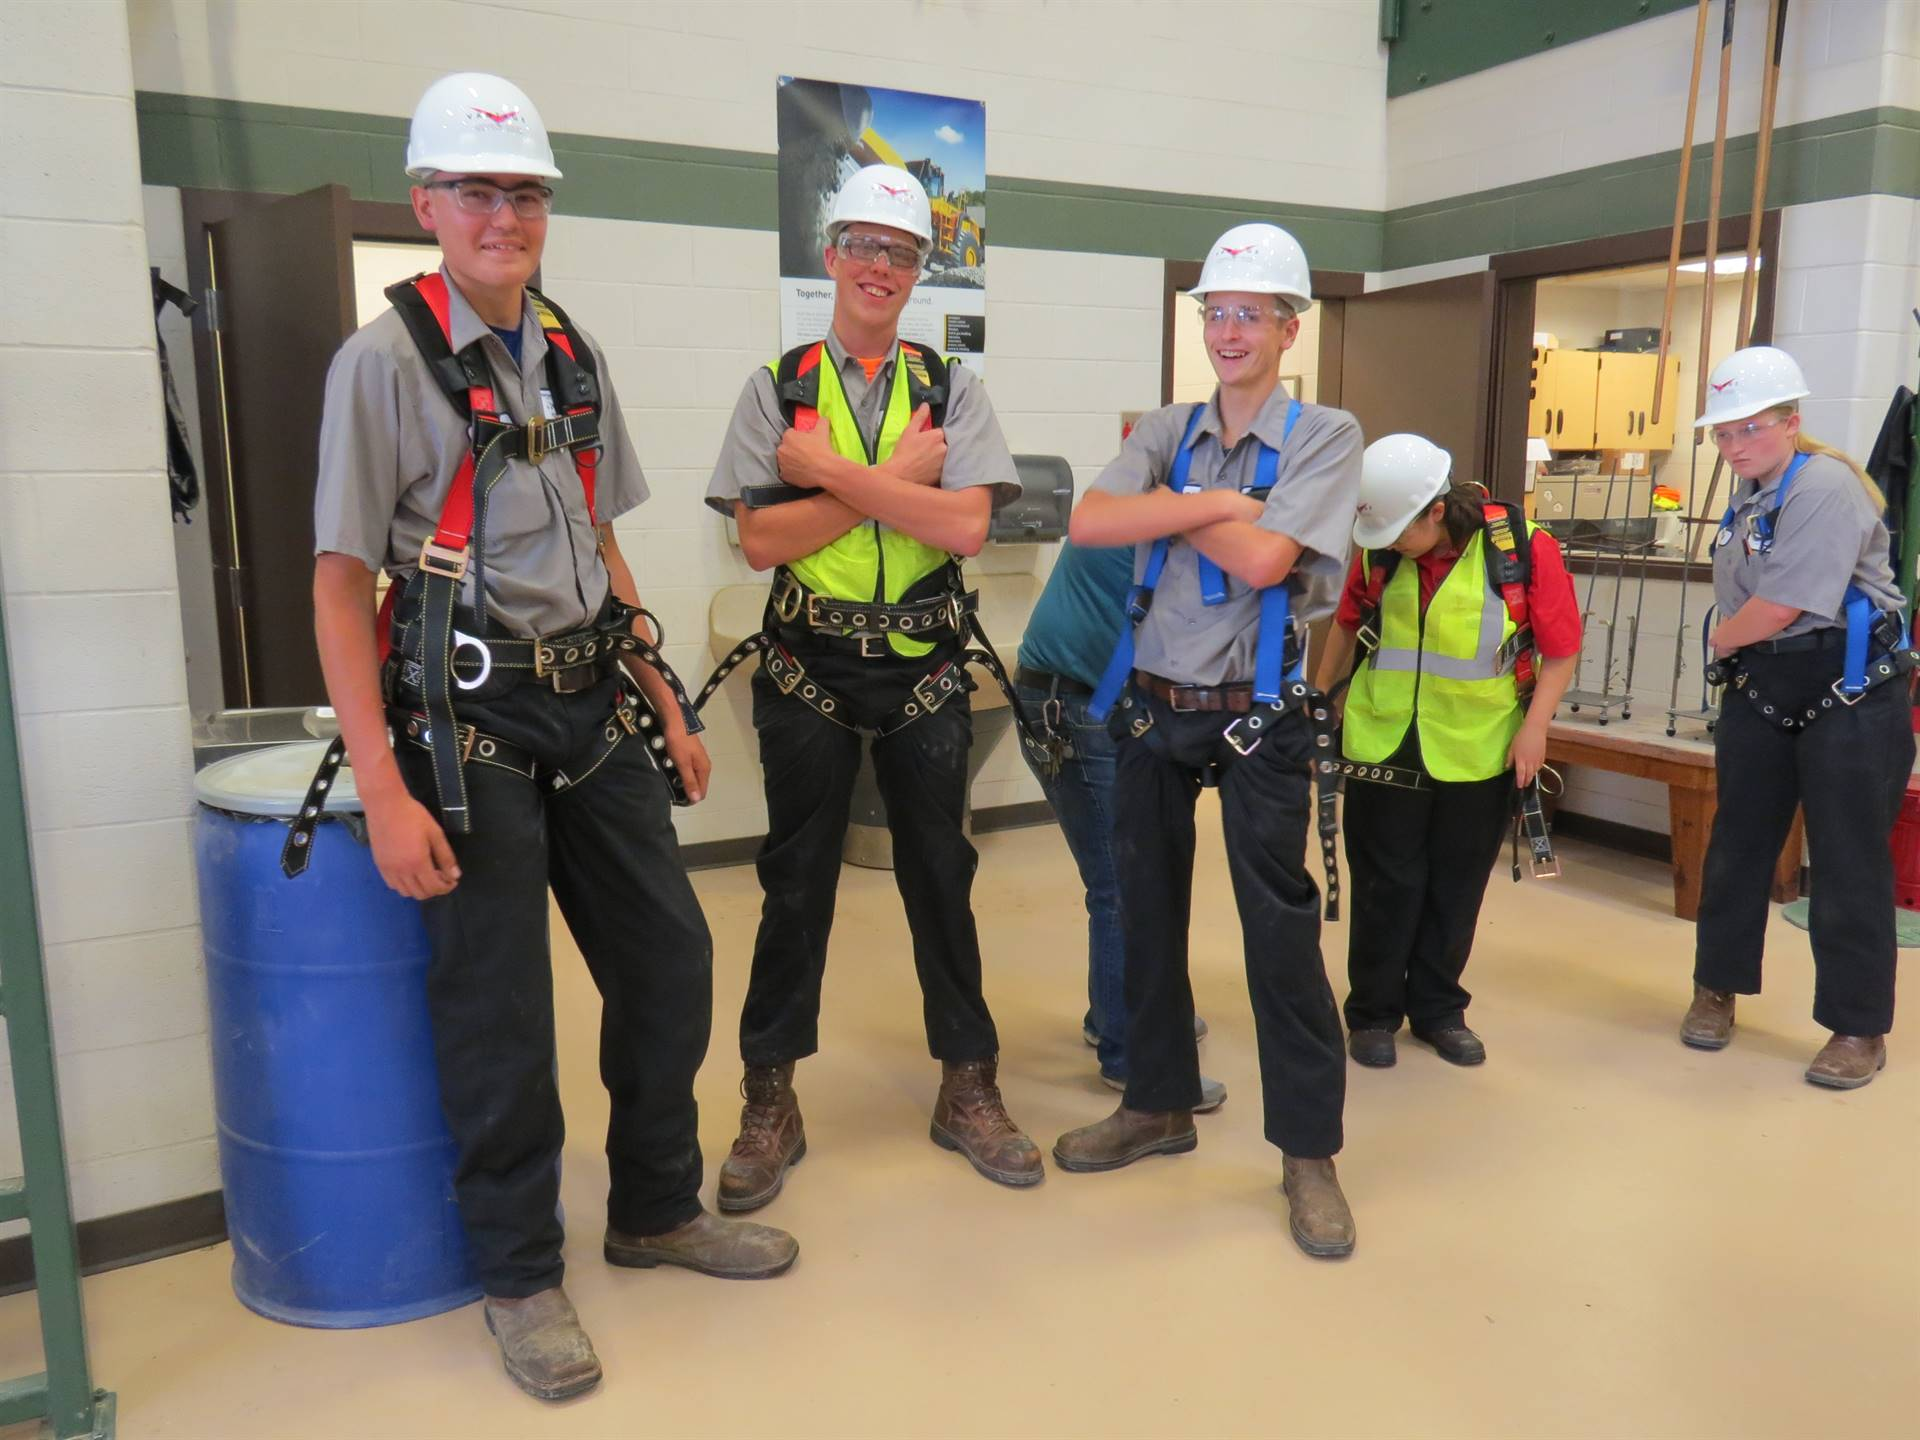 Construction Equipment Technology use safety harnesses during skills assessment.